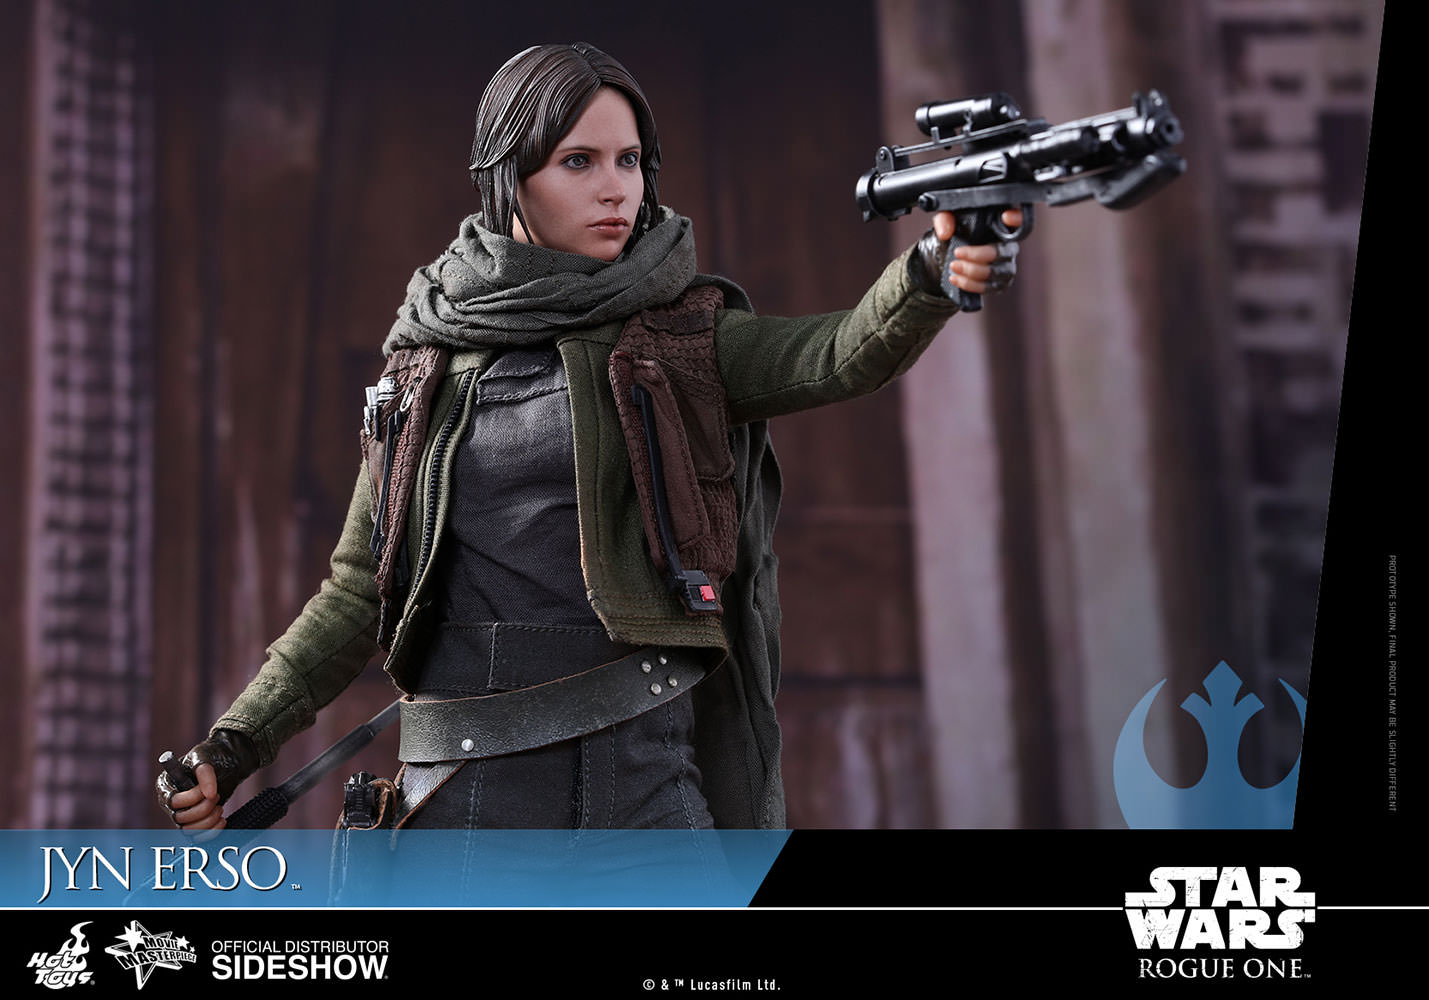 Star Wars Jyn Erso Sixth Scale Figure By Hot Toys Sideshow 1 6 Female